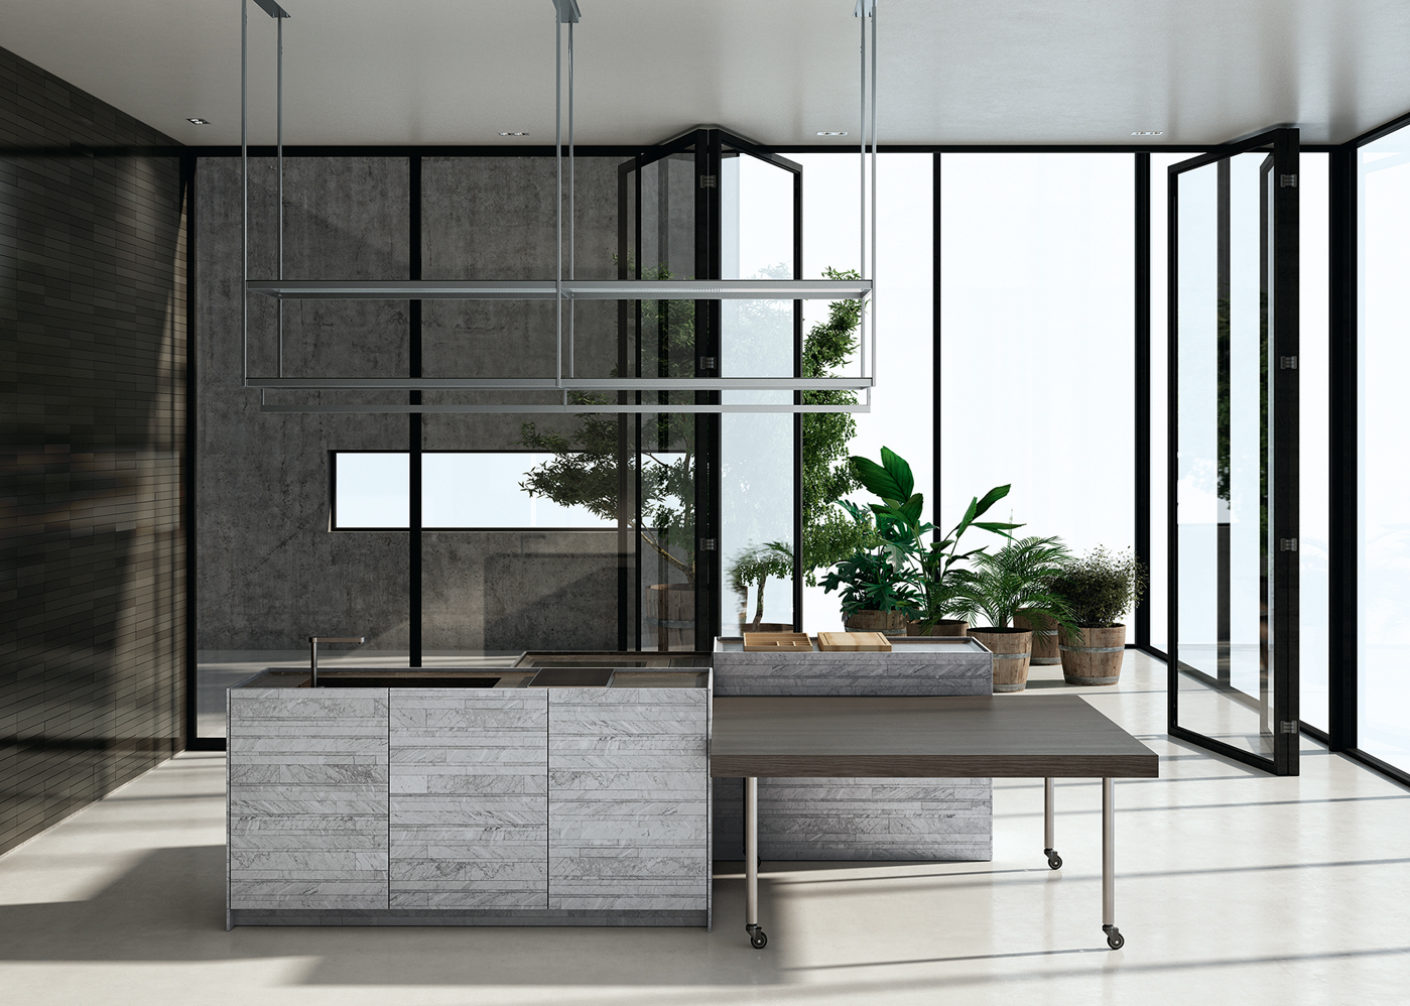 """Flexible: With Piero Lissoni's """"Combine"""" function blocks for Boffi, kitchen furnishings can be distributed throughout the room as required."""